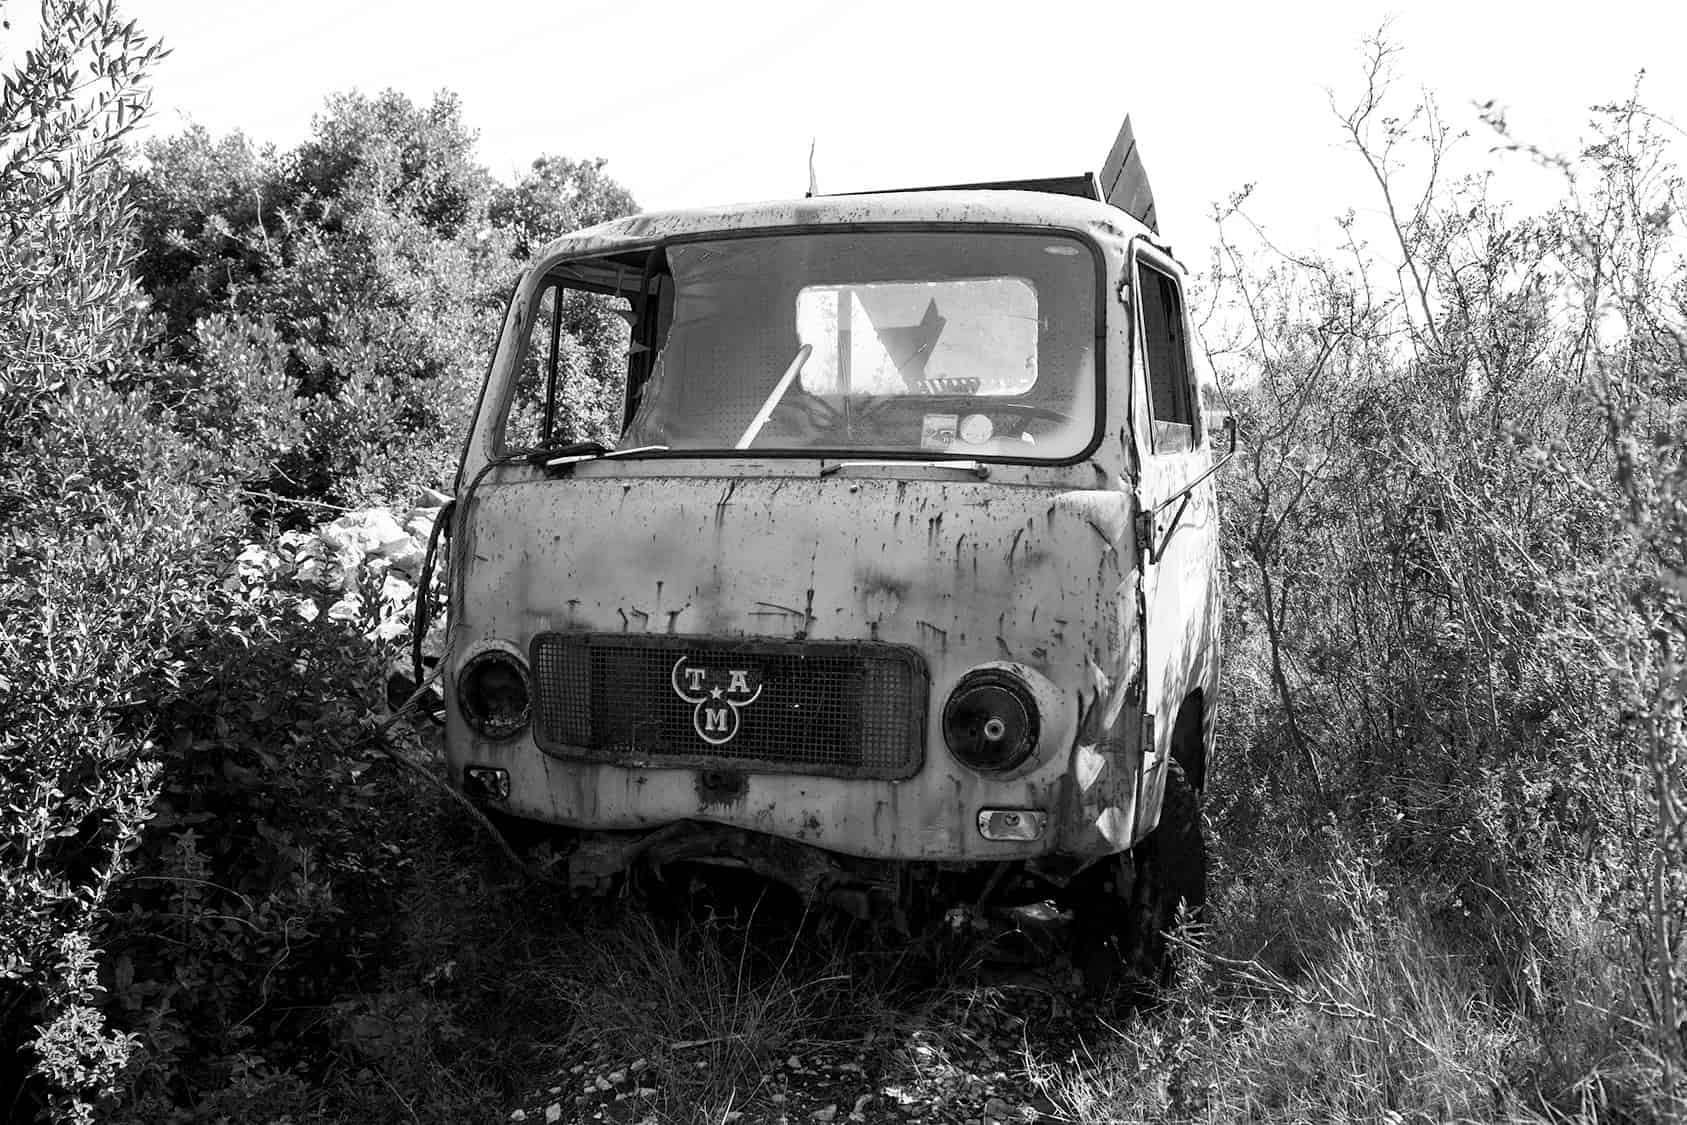 Derelict and abandoned vehicles with smashed windscreen and headlights